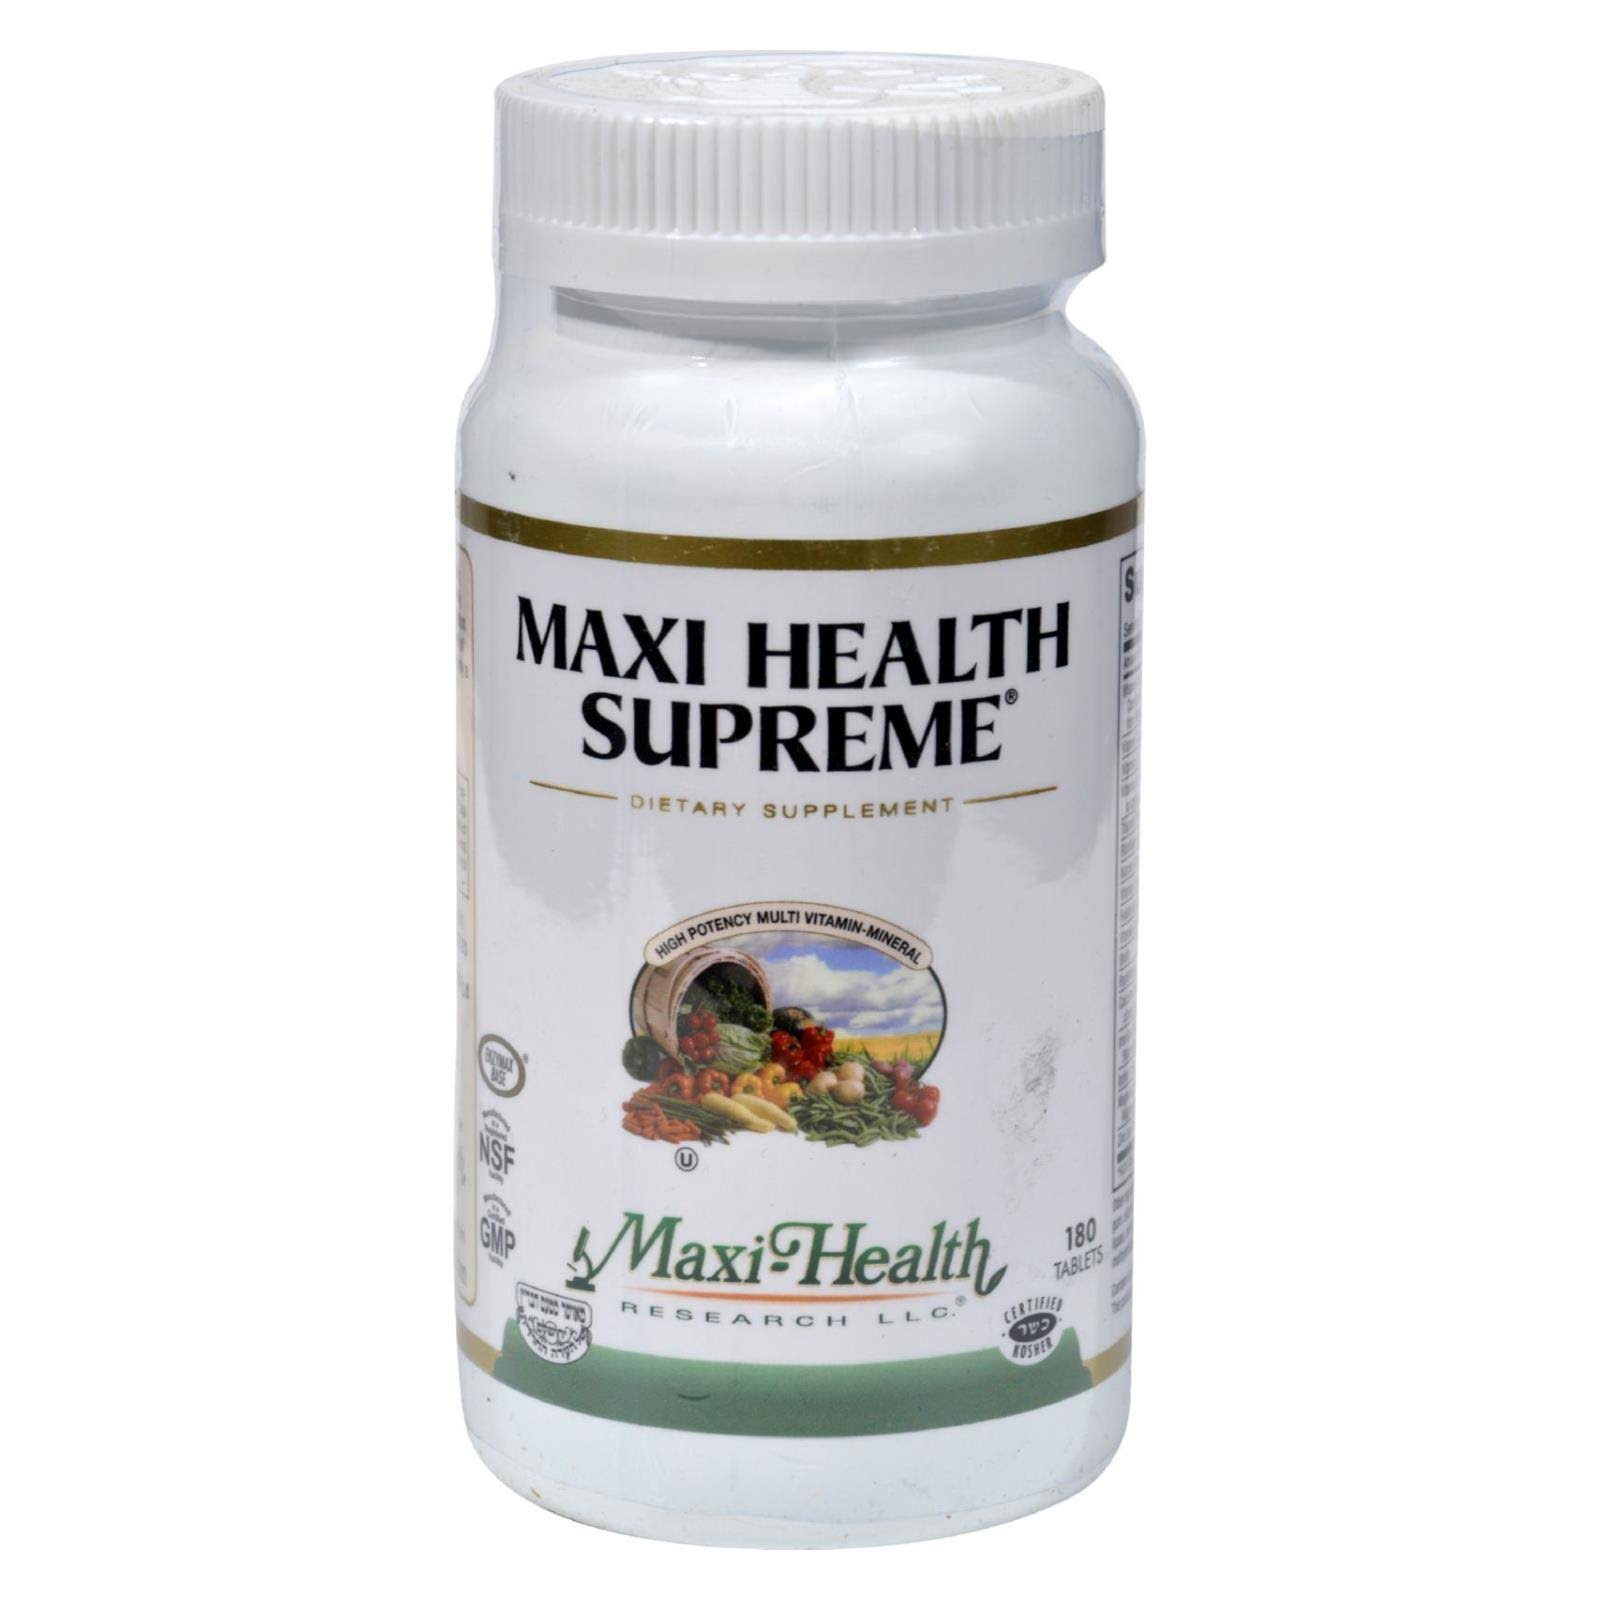 Maxi Health Supreme High Potency Multivitamin and Mineral Supplement - 180 Count